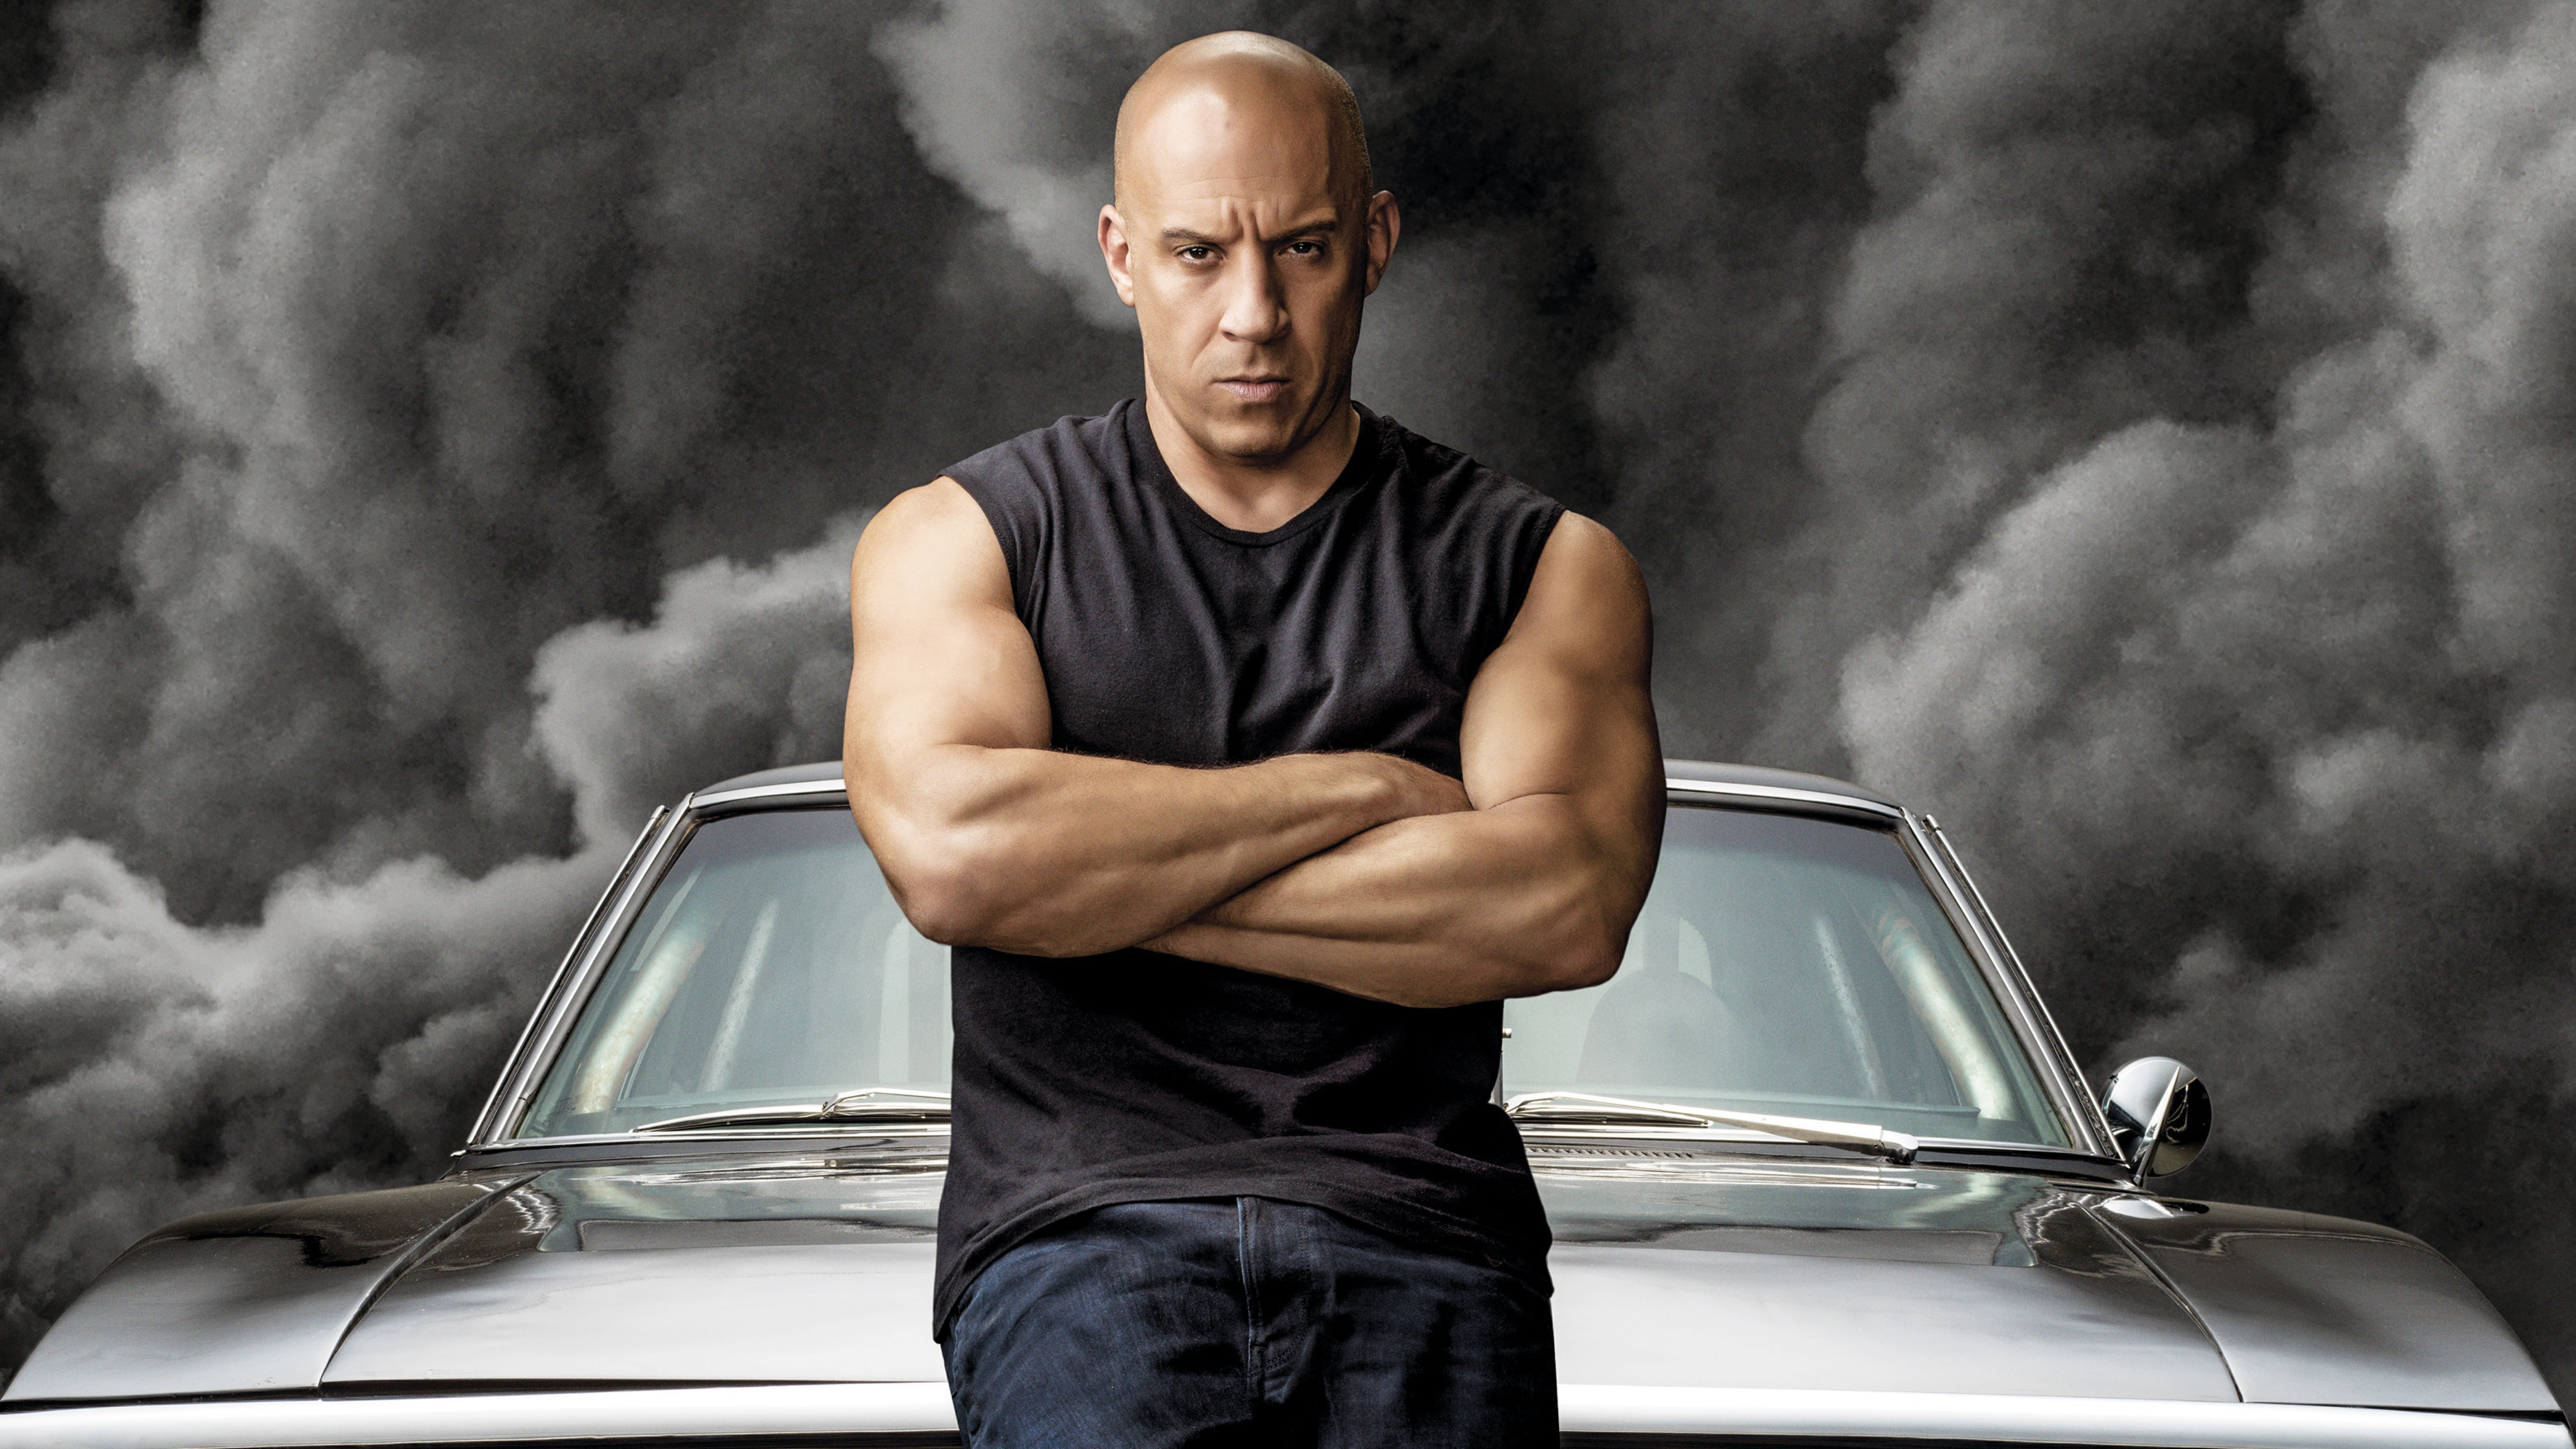 Wallpaper Vin Diesel  as Dominic Toretto in Fast and Furious 9